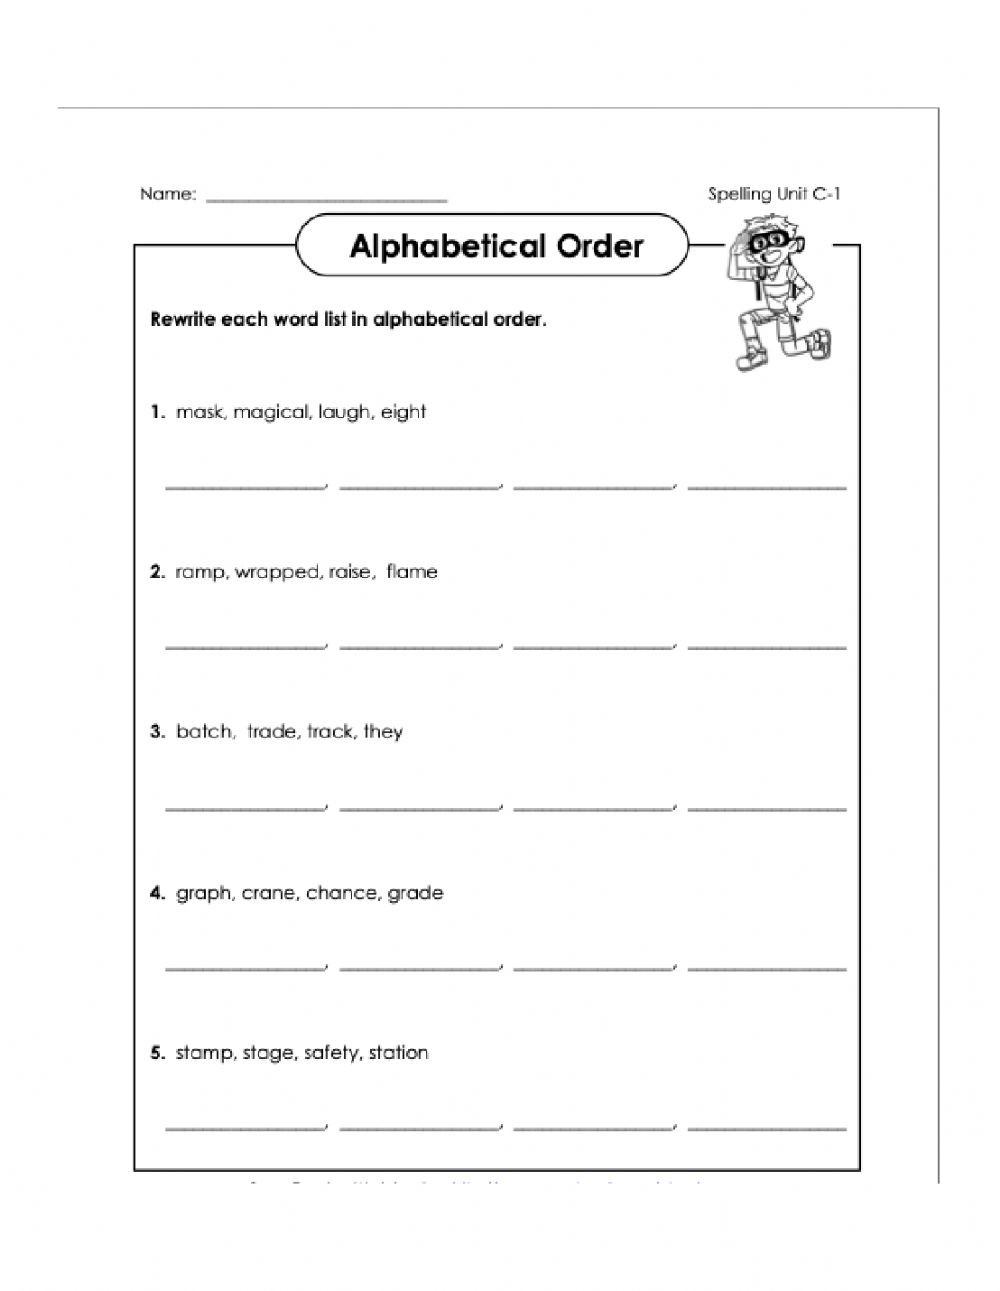 Alphabetical order Worksheets Grade 1 Alphabetical order C1 4th Worksheet